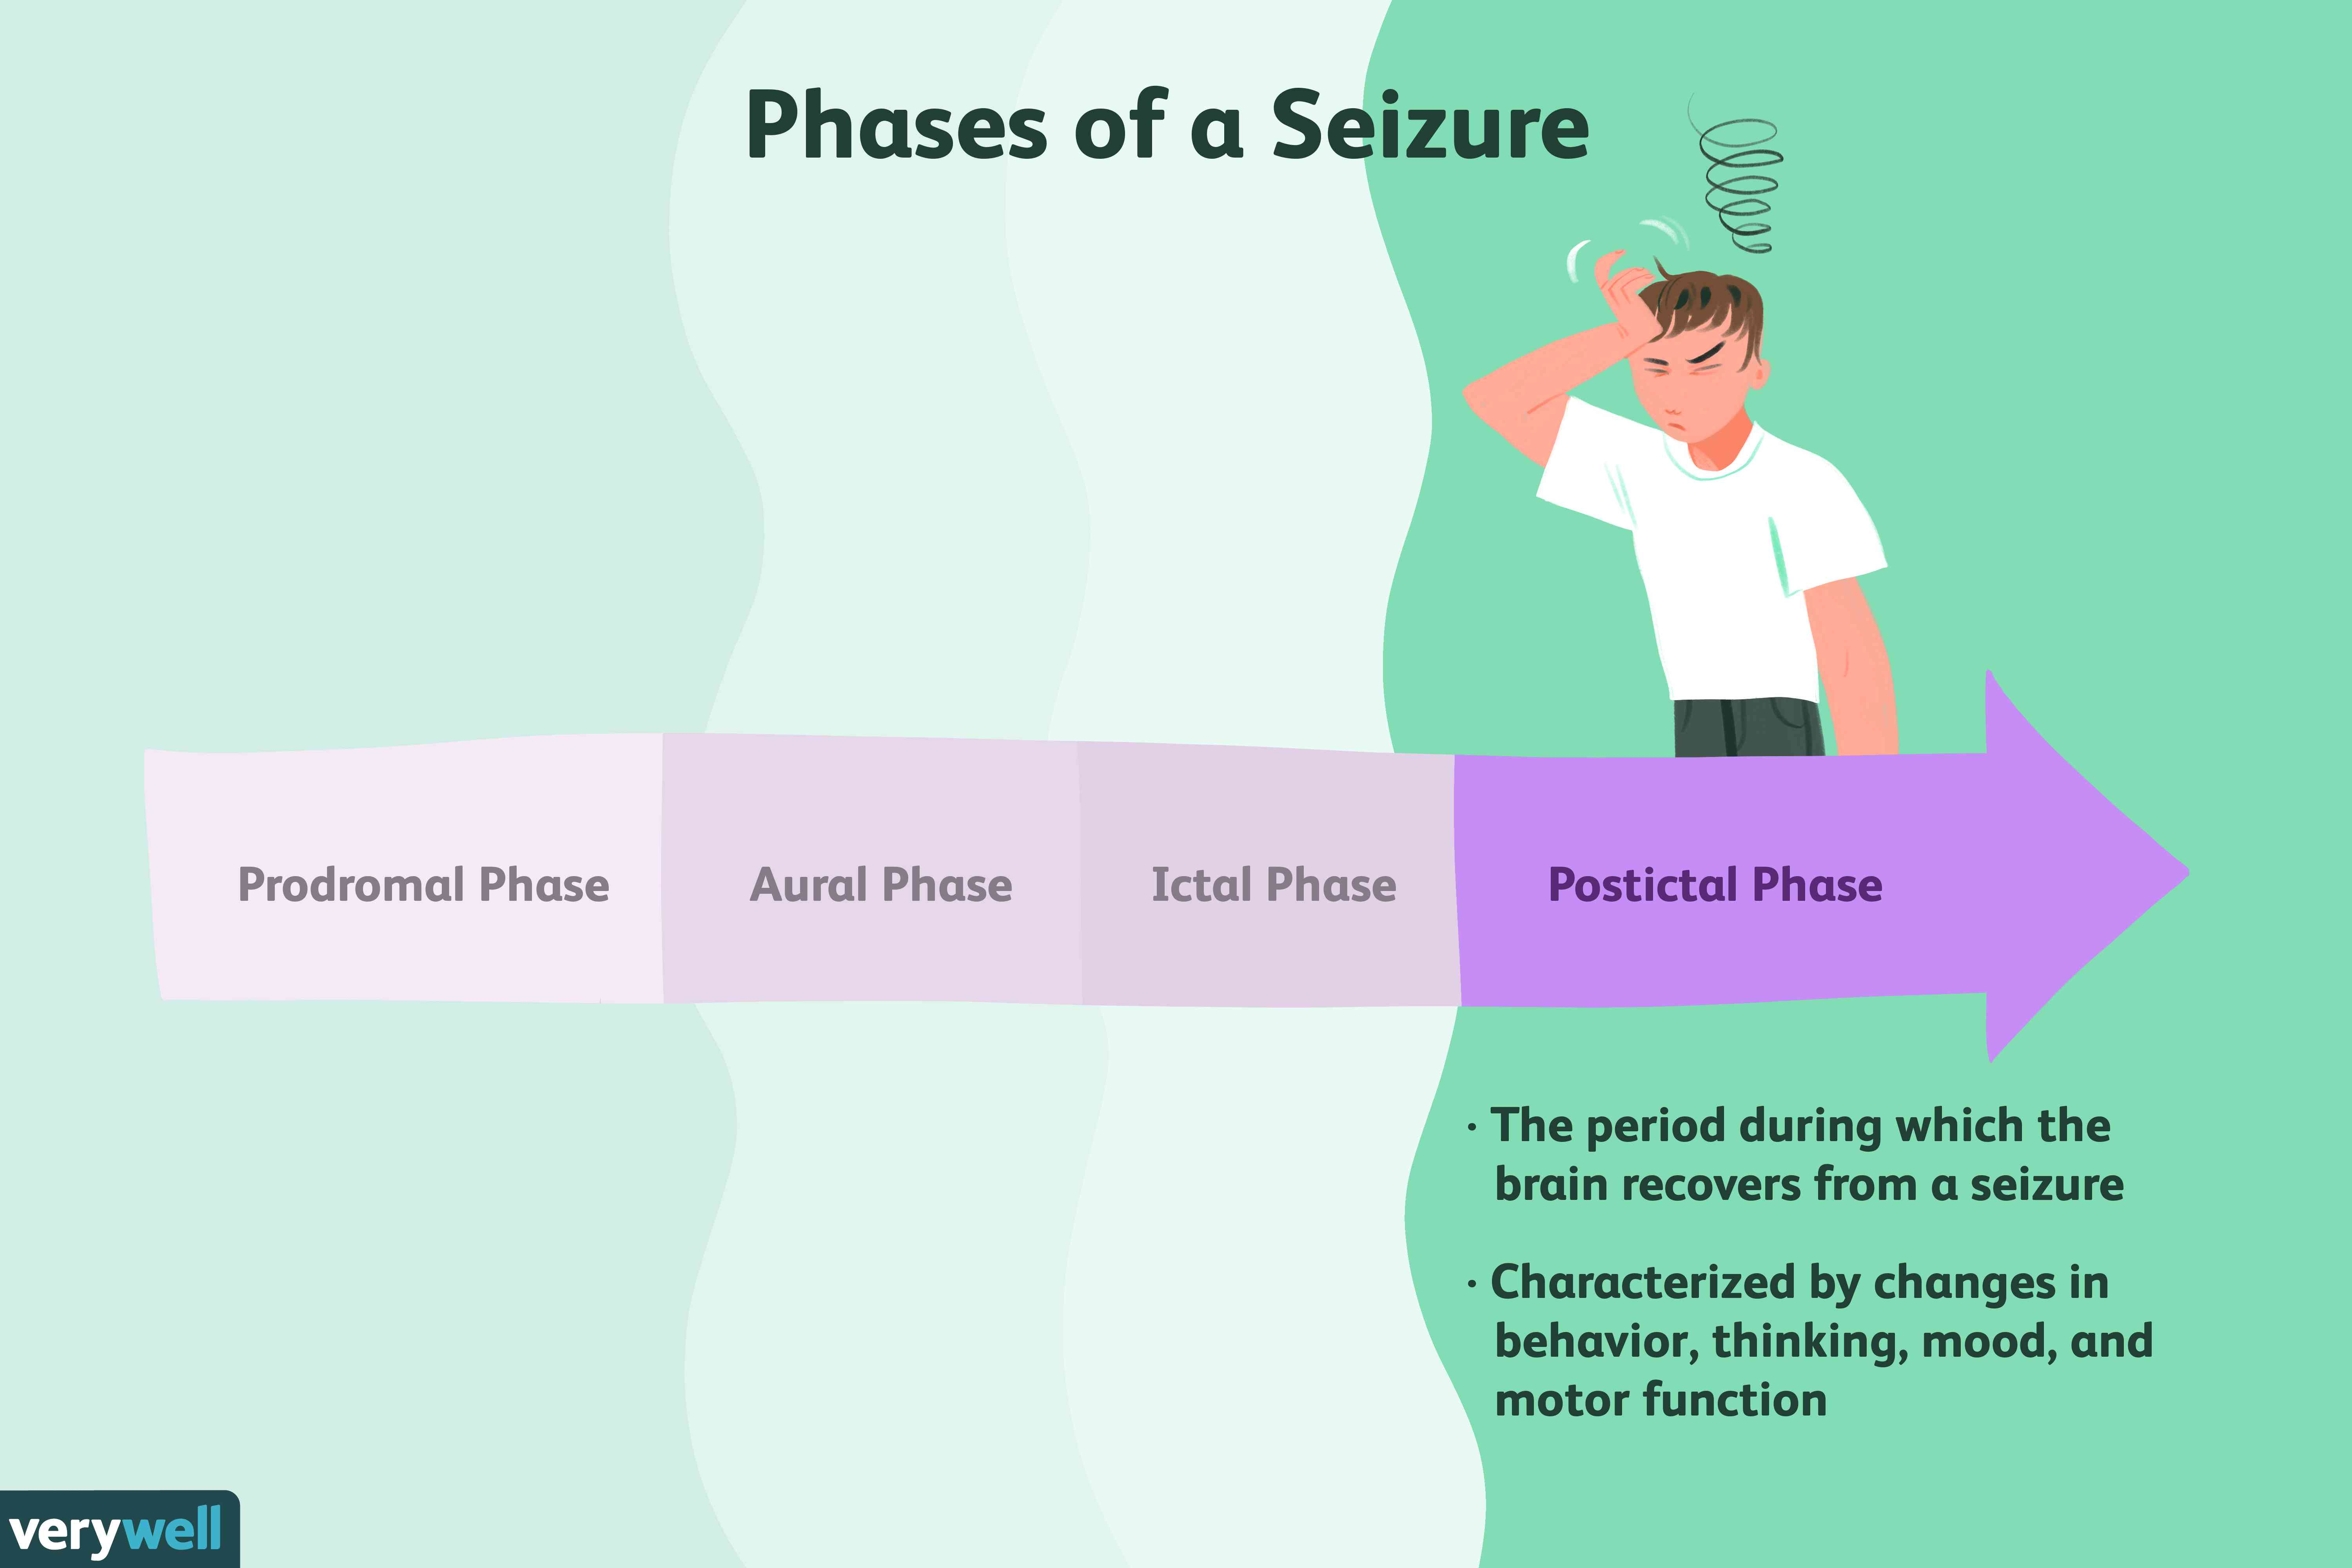 Delaying Vaccines May Increase Seizure >> The Postictal Phase Of A Seizure